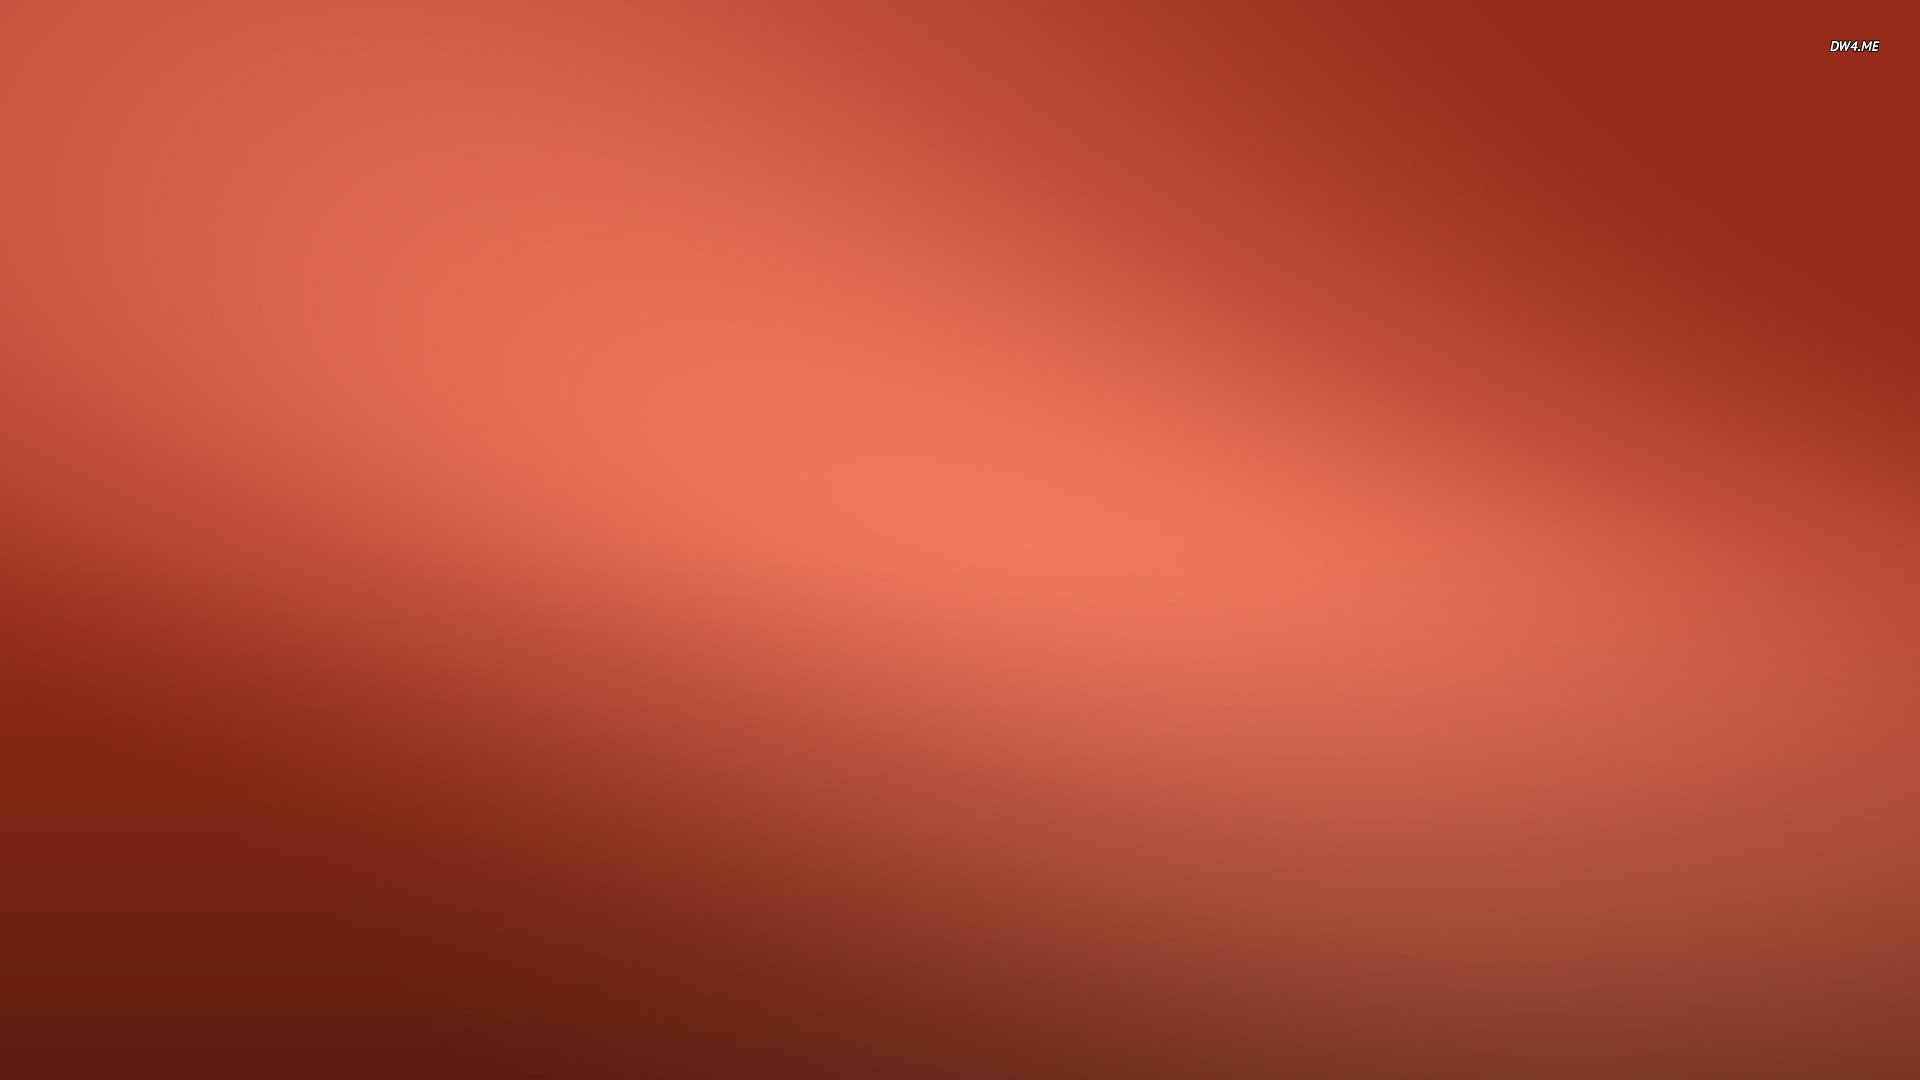 Copper wallpaper   Minimalistic wallpapers   388 1920x1080